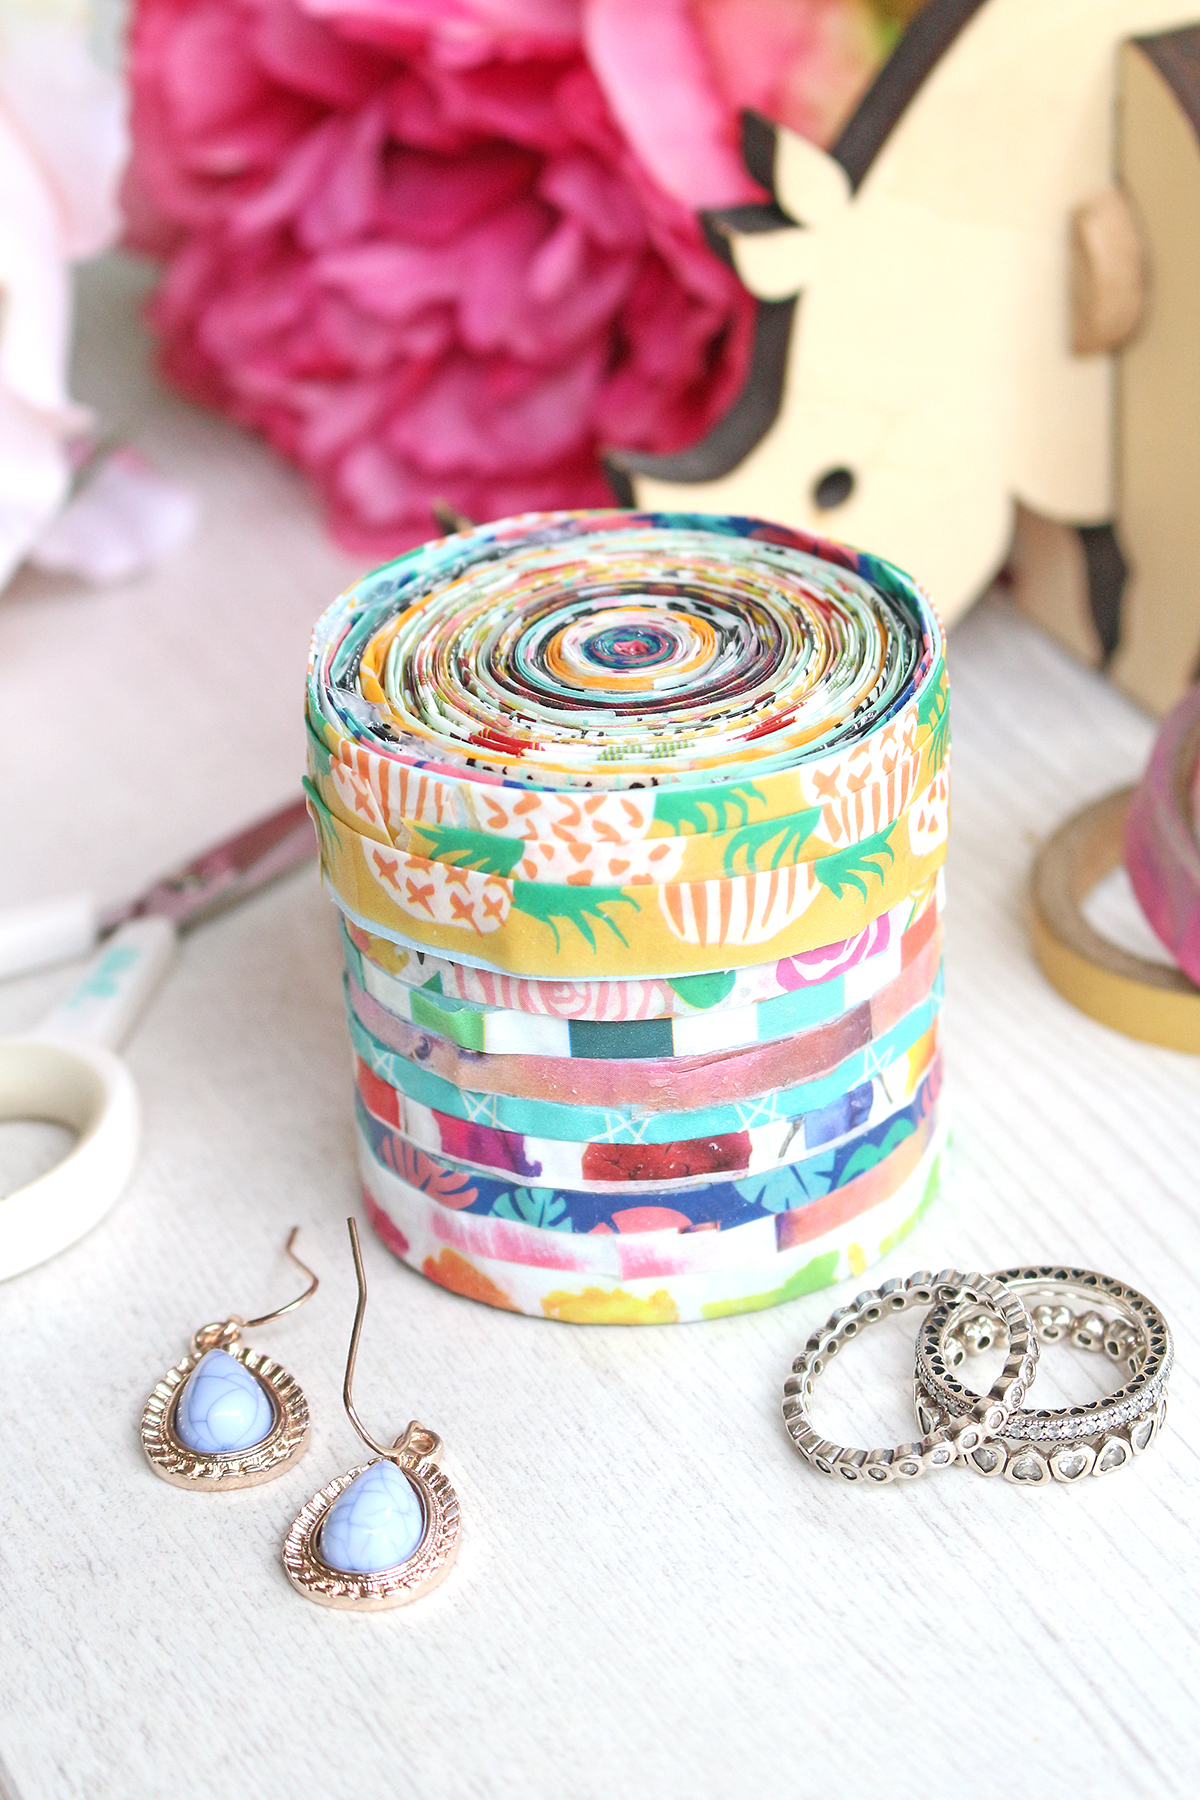 DIY Washi Tape Jewelry Box by Chantalle McDaniel for We R Memory Keepers